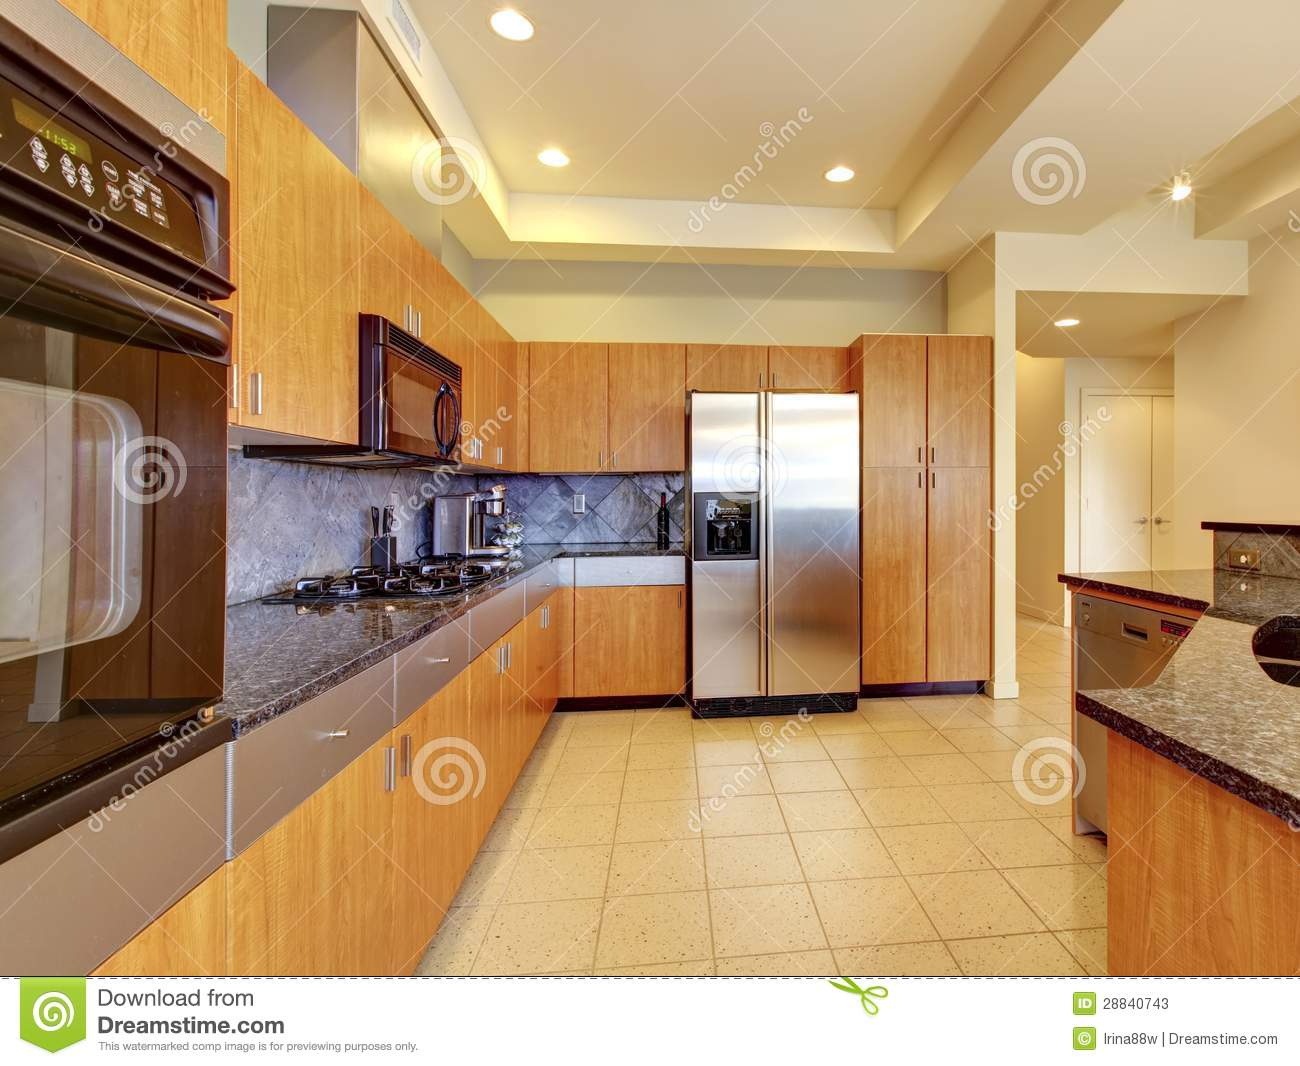 Large modern wood kitchen with living room and high ceiling stock photos image 28840743 - Plafond de cuisine design ...